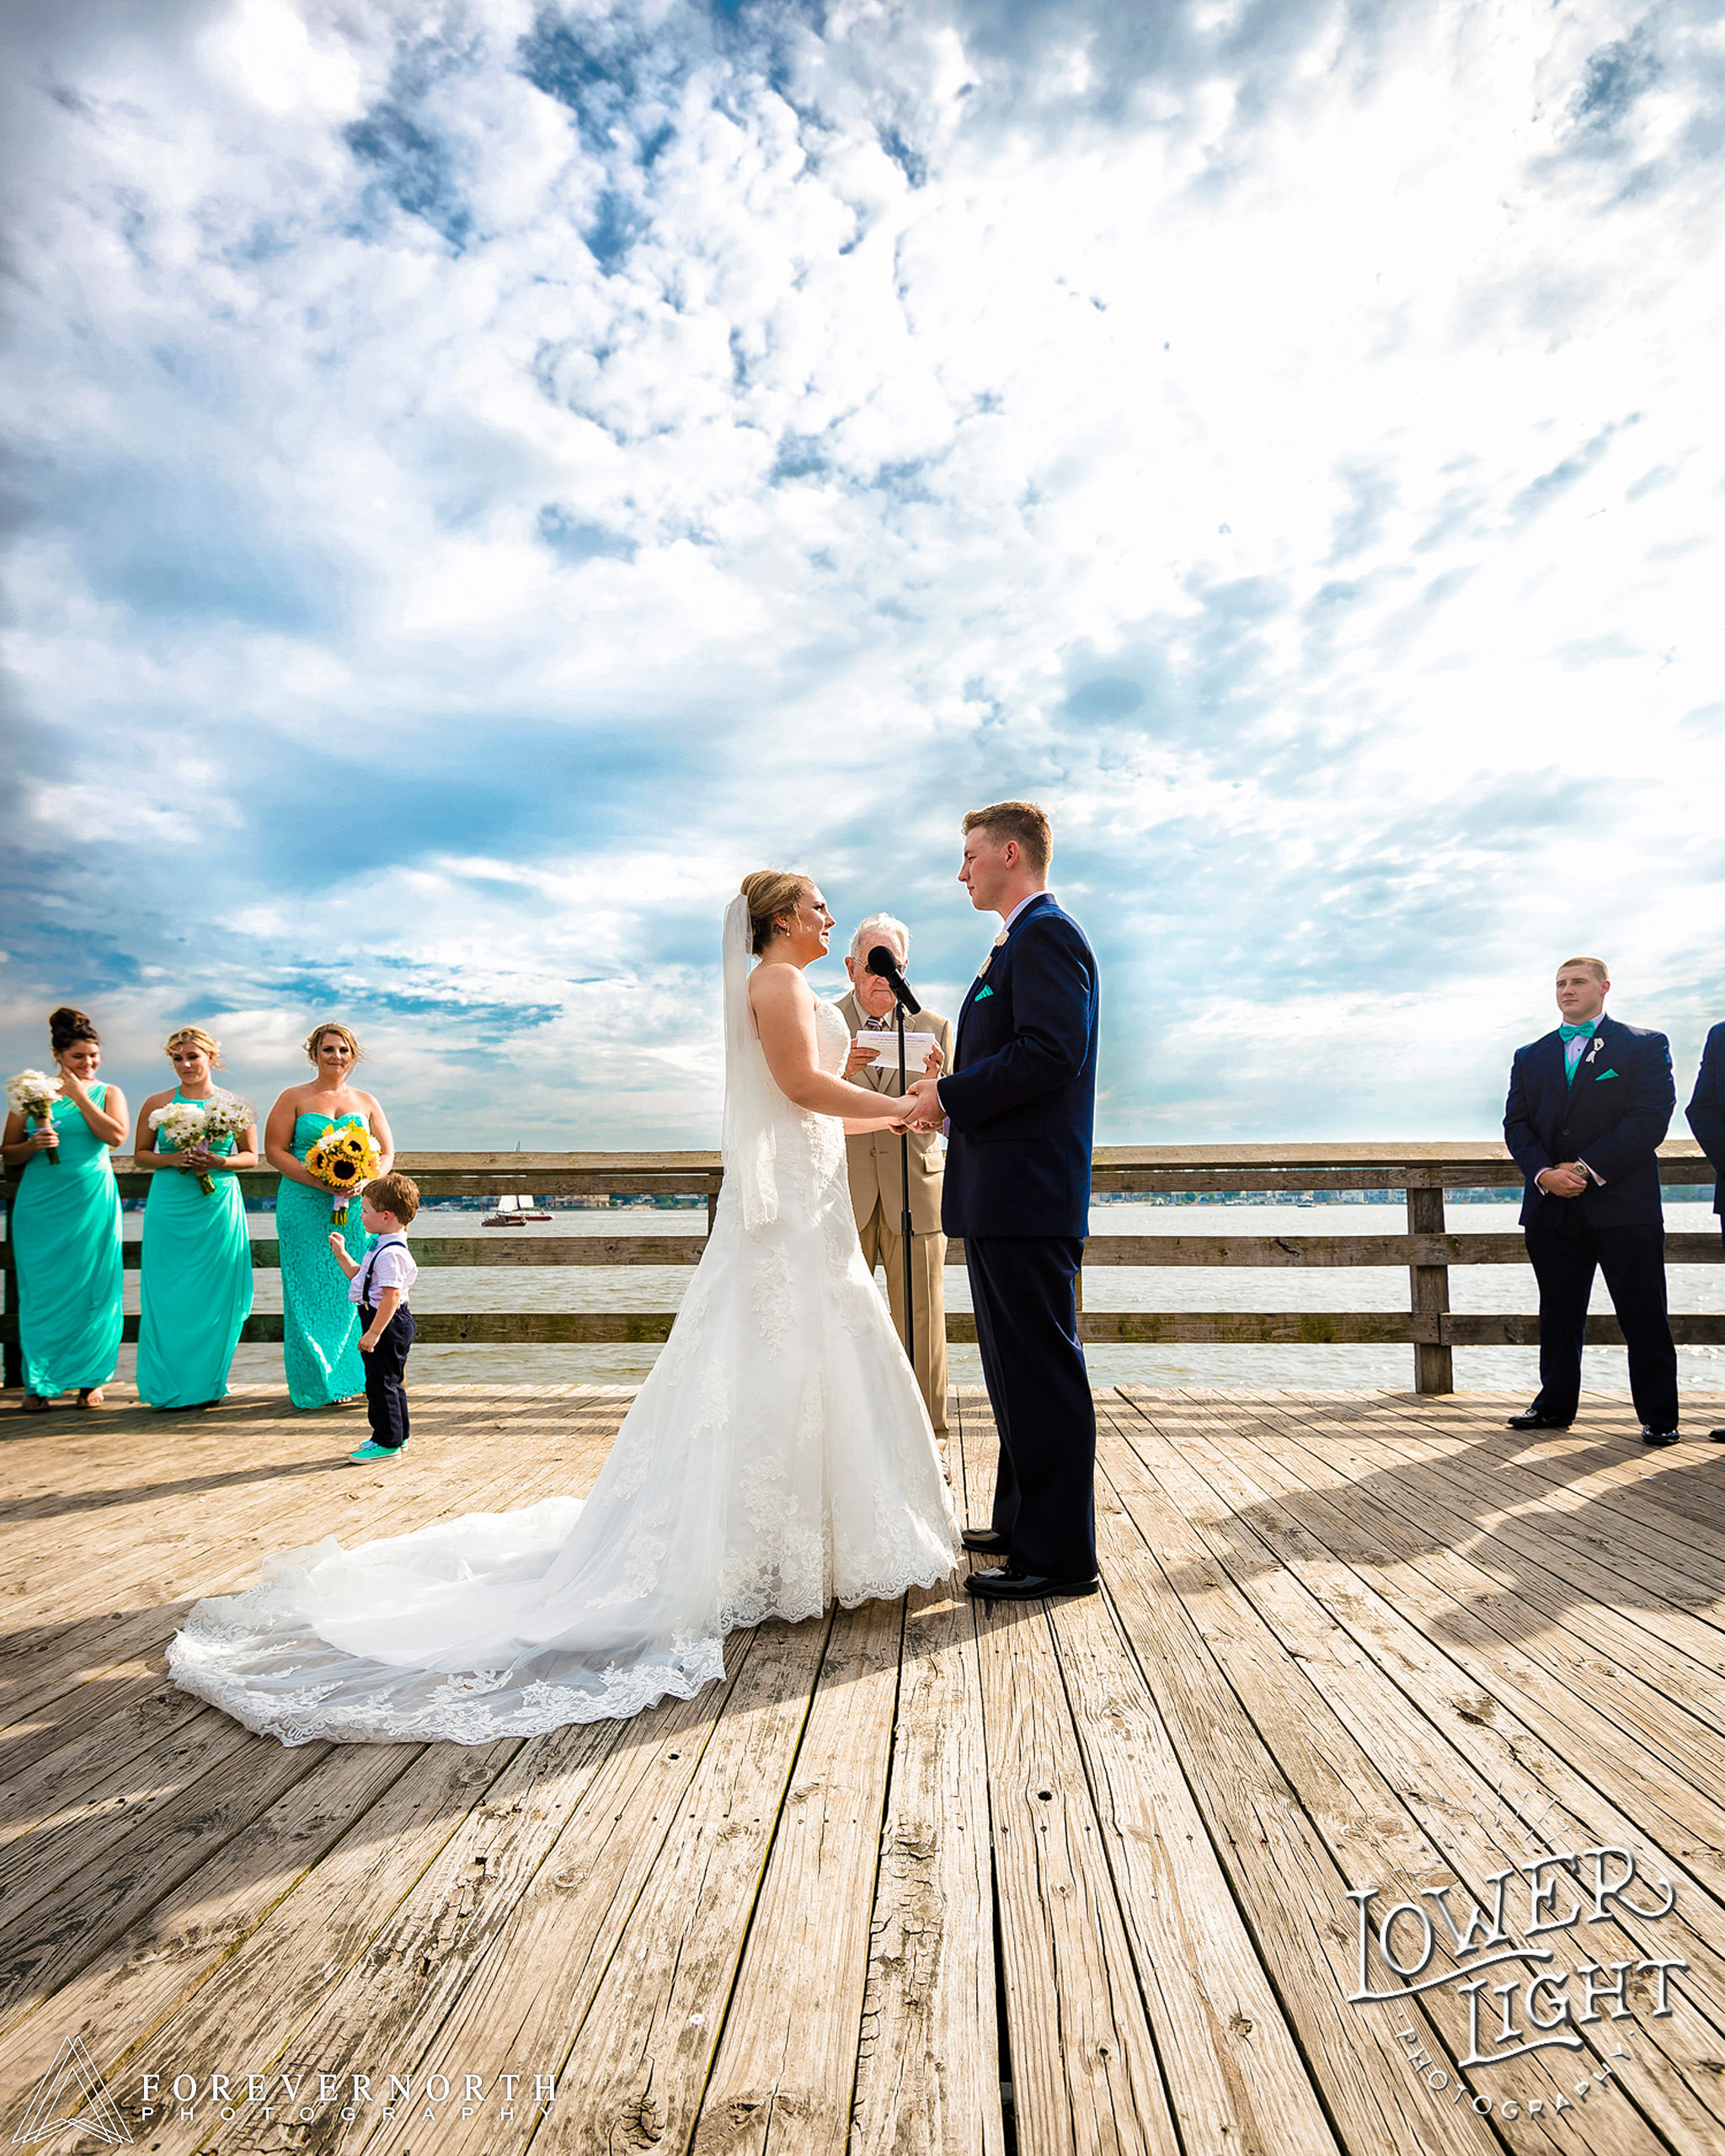 a beautiful sunny day at windward beach during the ceremony of the wedding